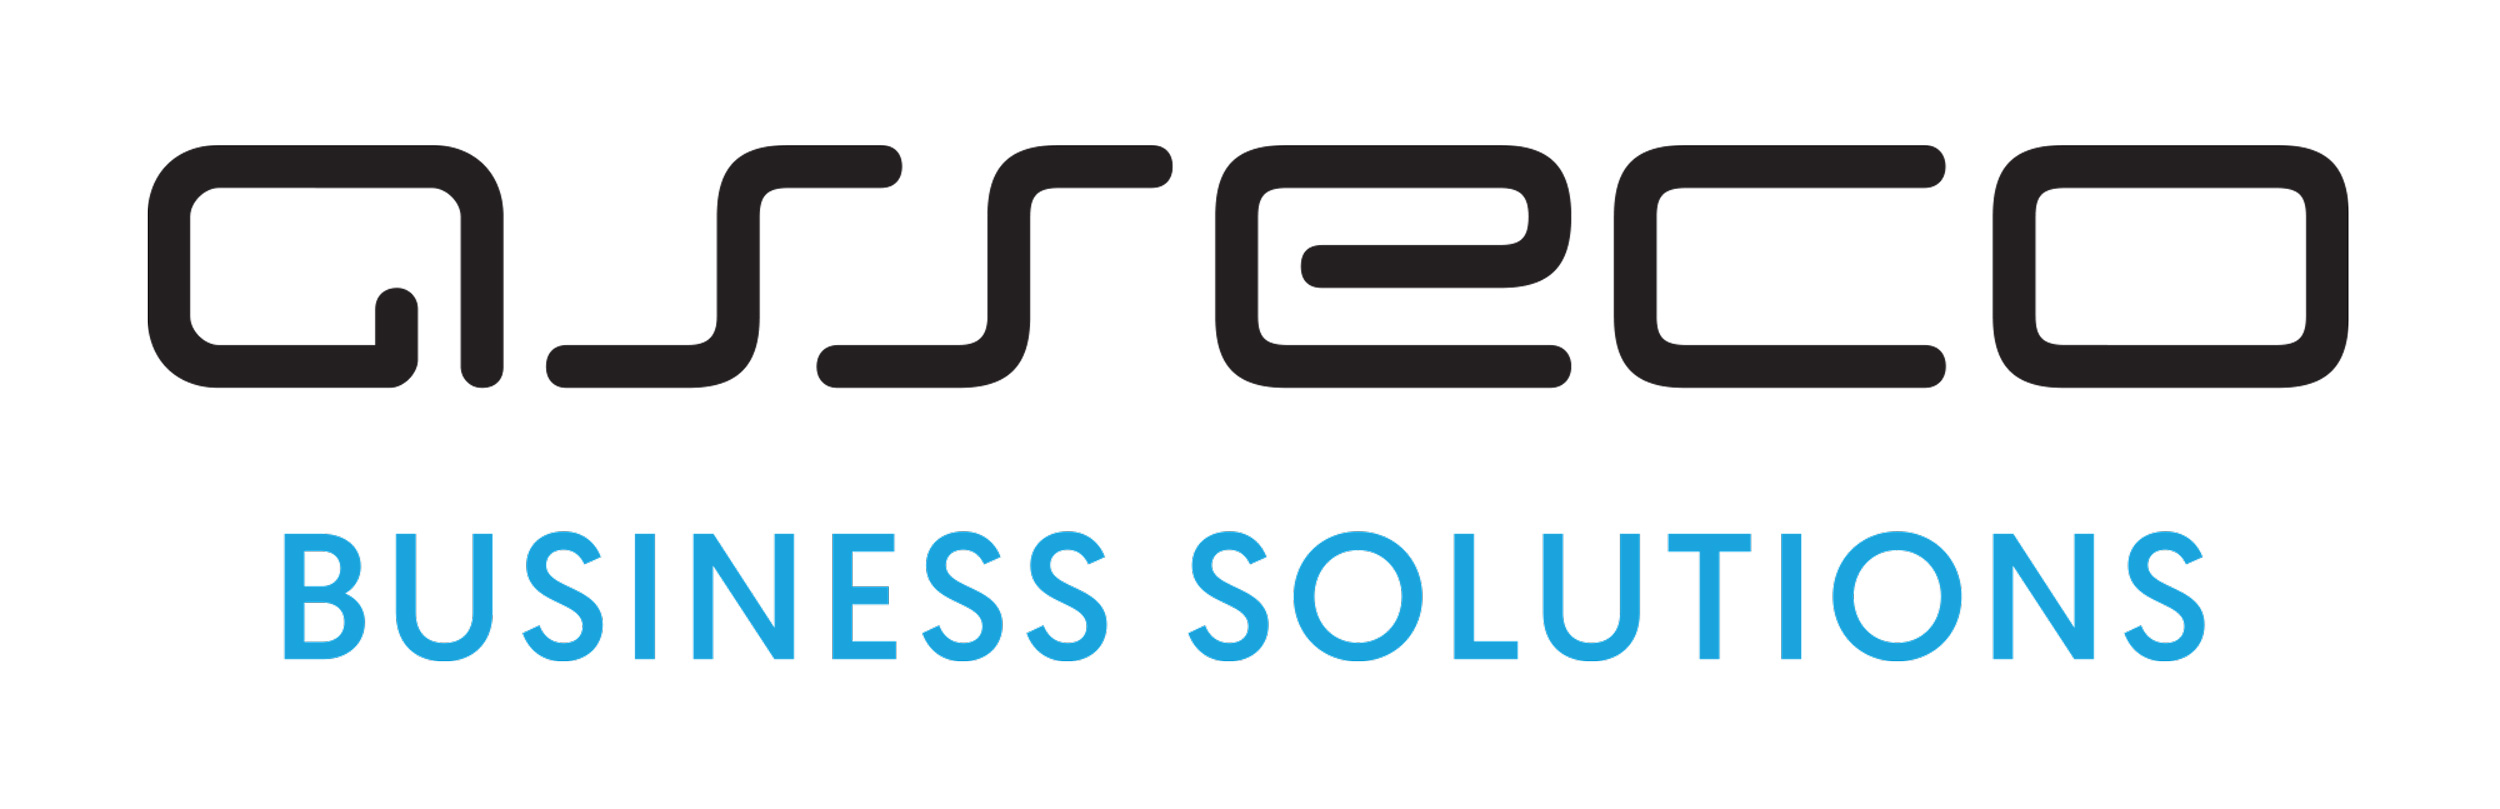 asseco-business-solutions-logo